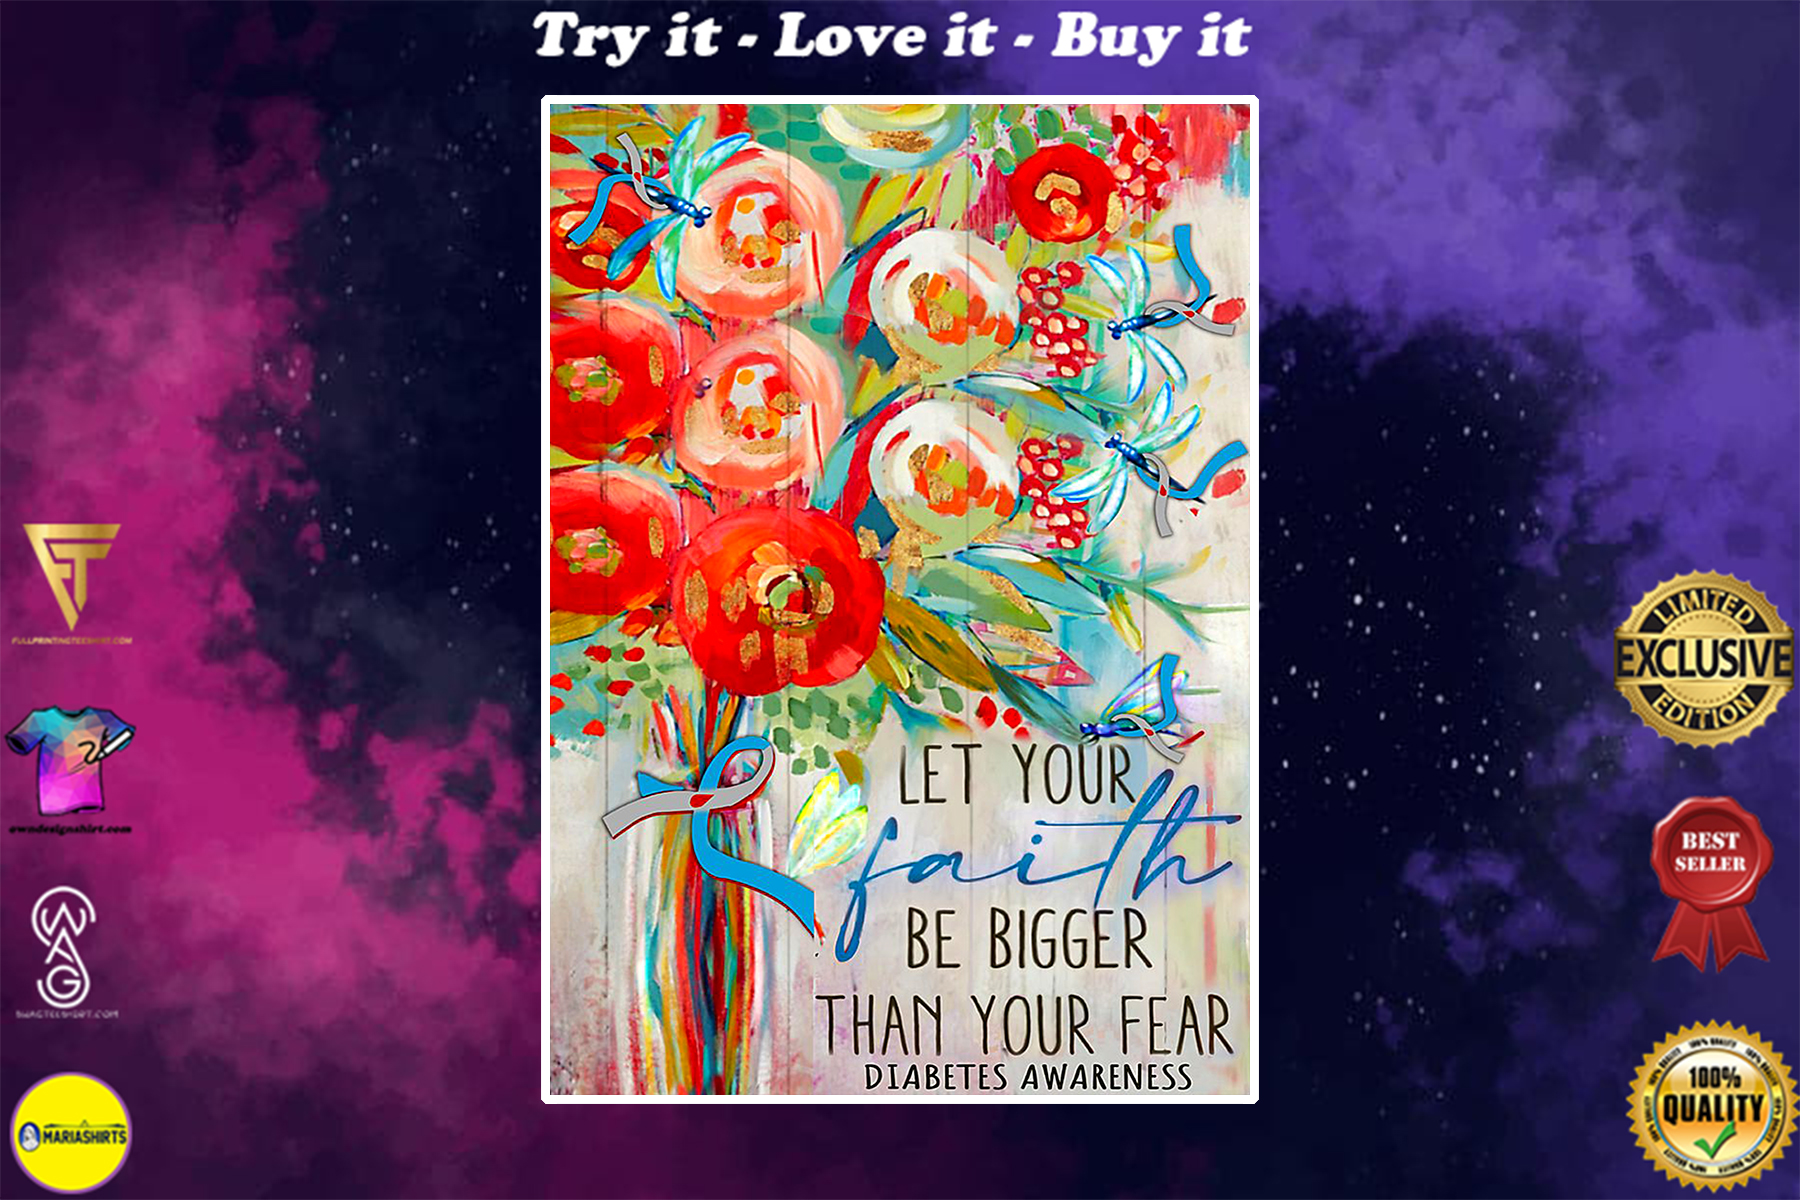 diabetes awareness let your faith be bigger than your fear watercolor poster